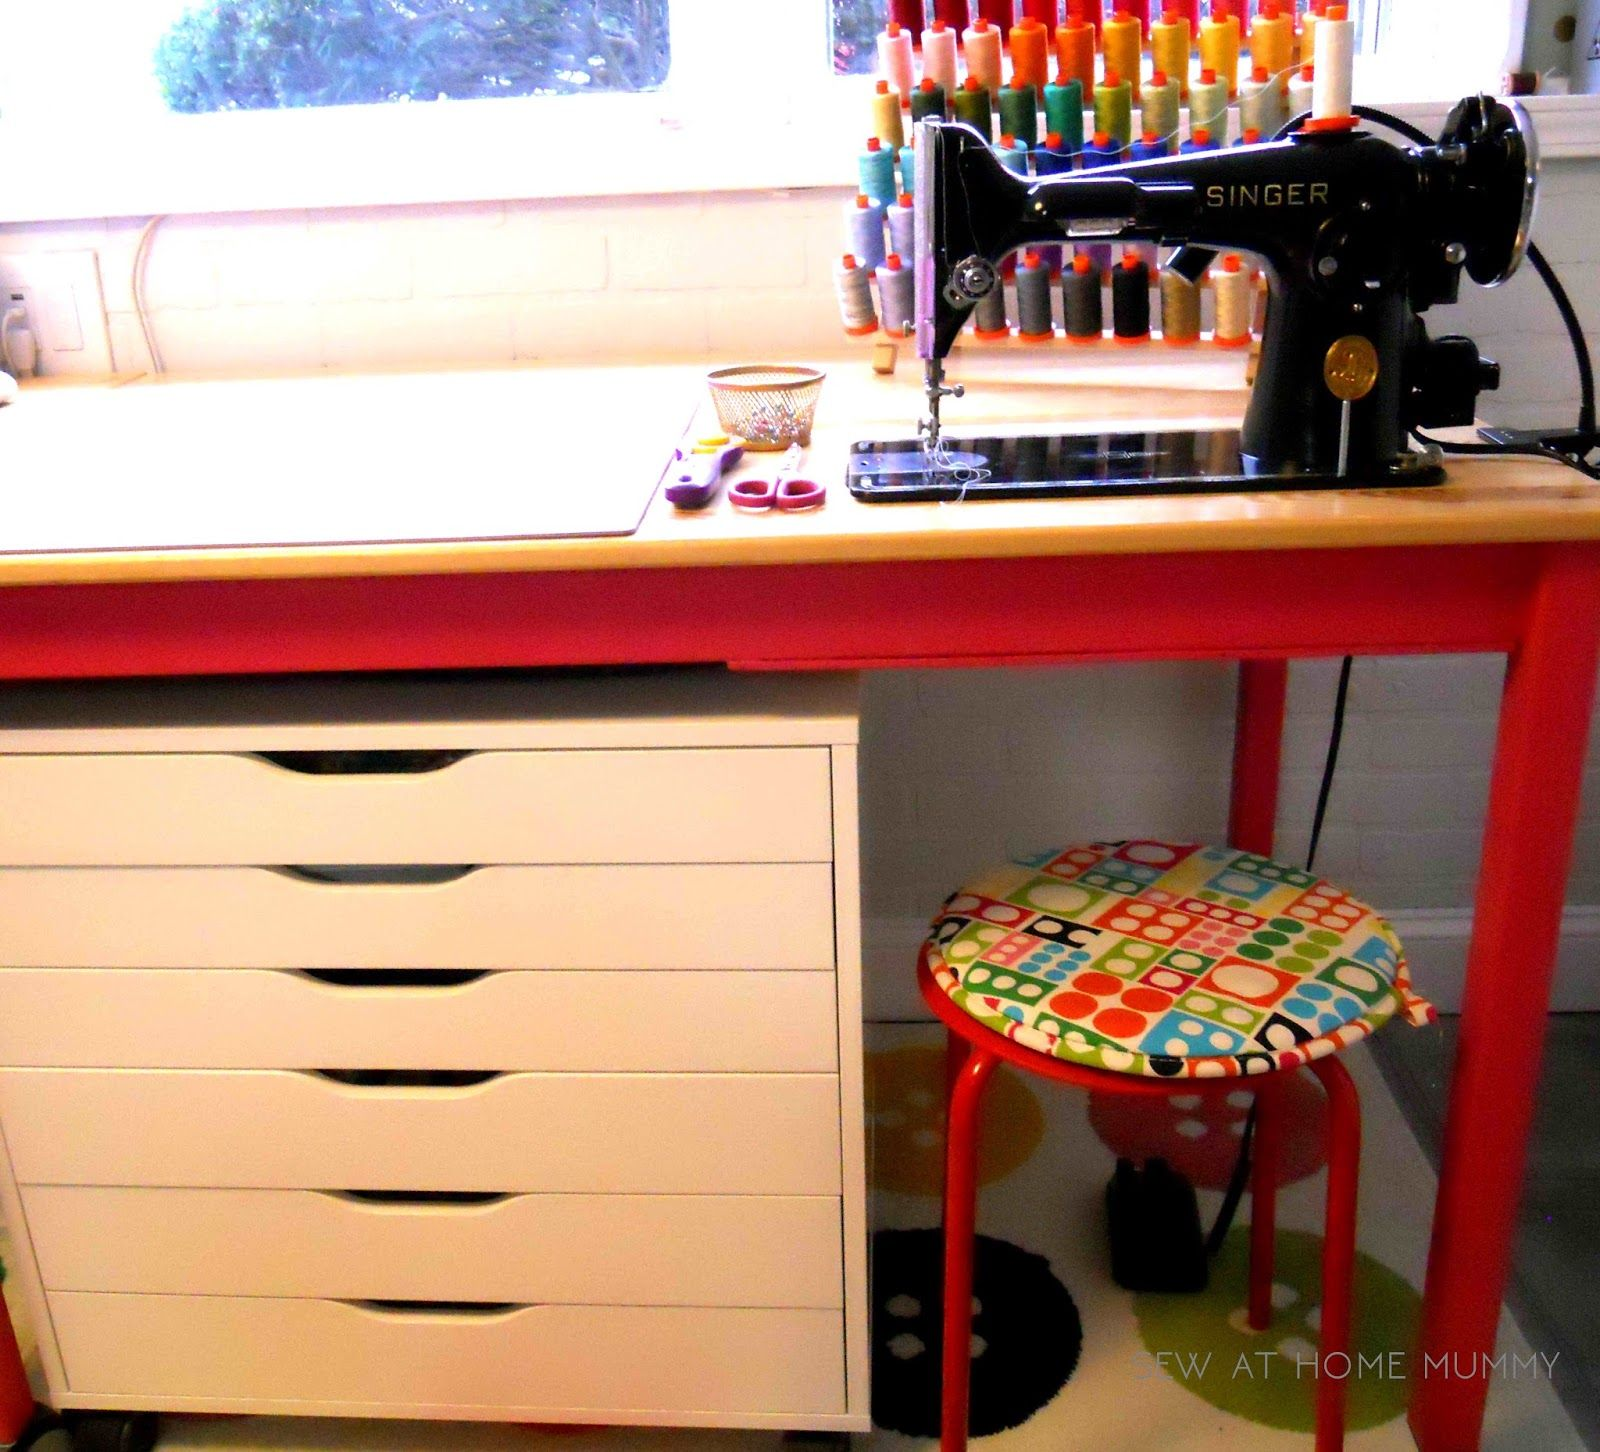 Diy ikea sewing table  Tutorial IKEA Hack The INGO Sewing Table for my Singer